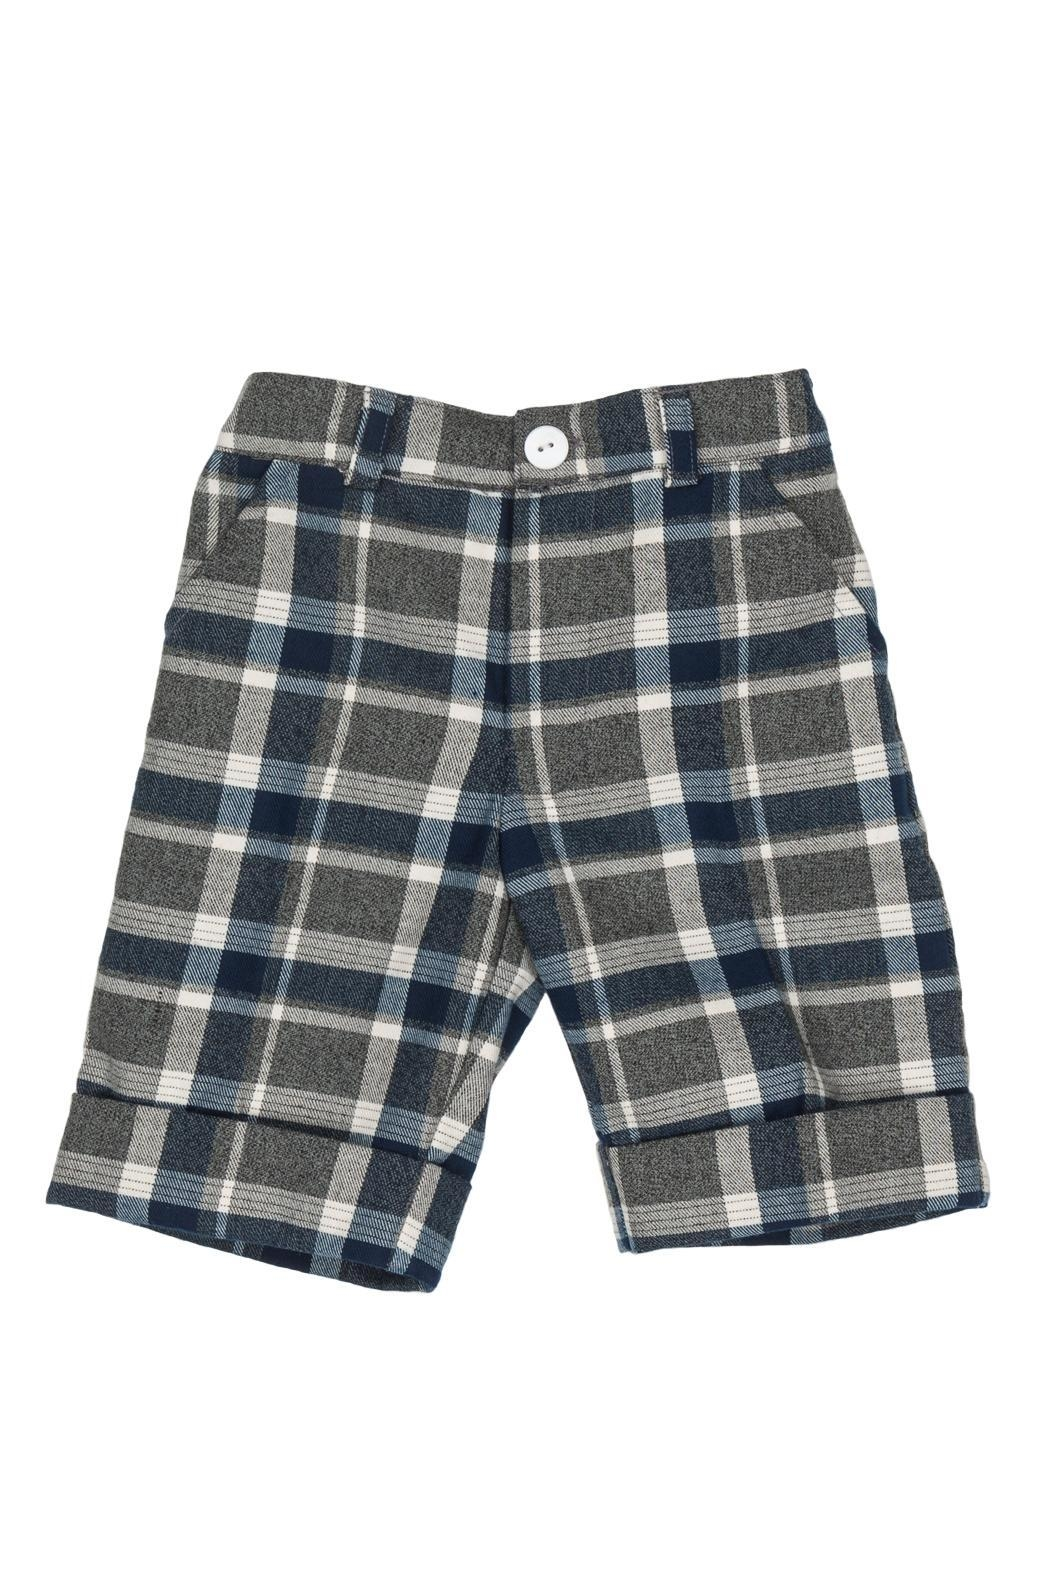 Malvi & Co. Grey Tartan Shorts. - Main Image